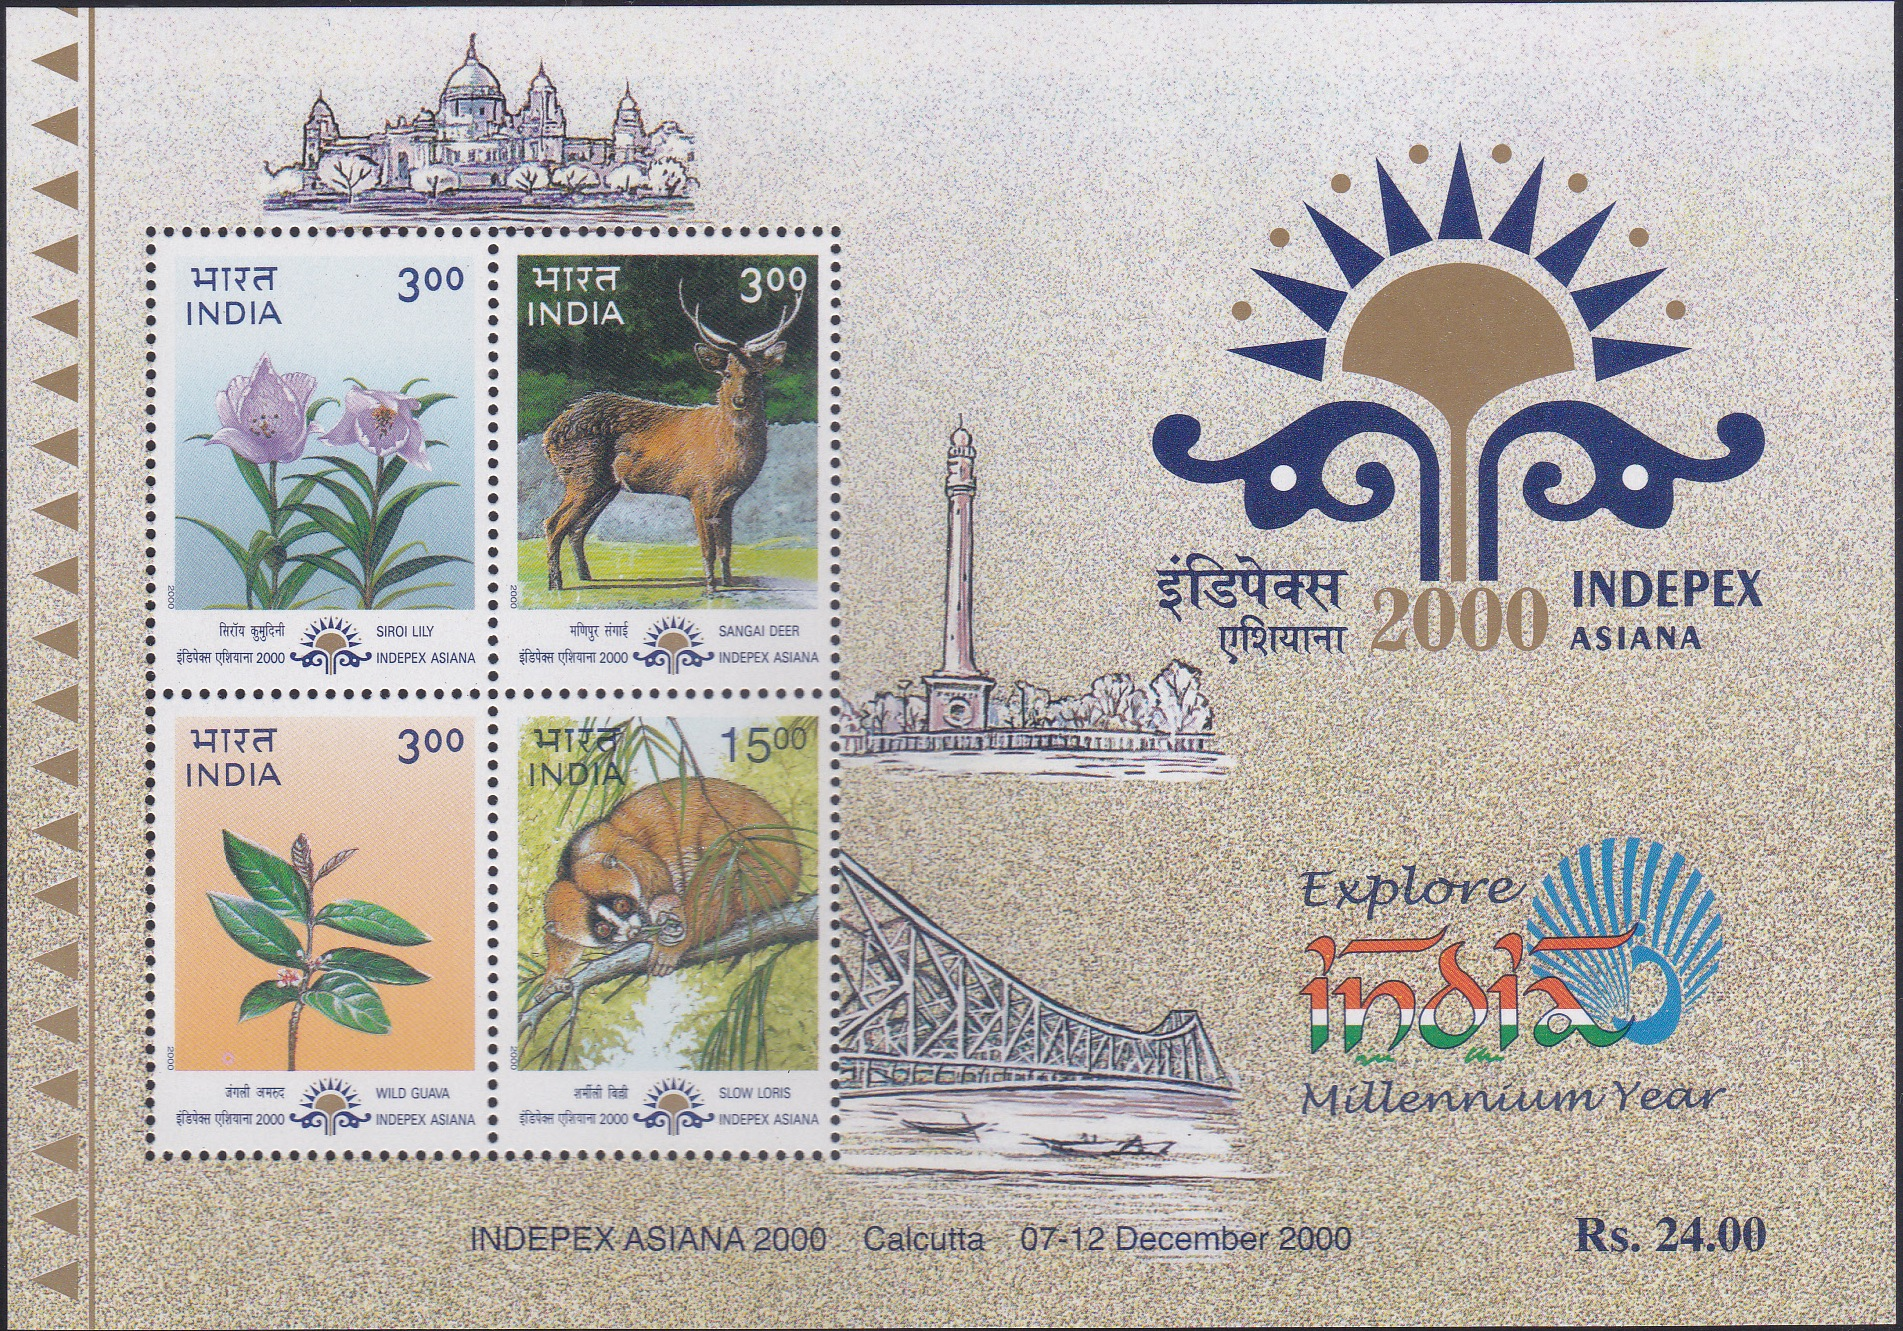 1756  Indepex Asiana - Natural Heritage of Manipur & Tripura [India Souvenior Sheet of 4 stamps 2000]